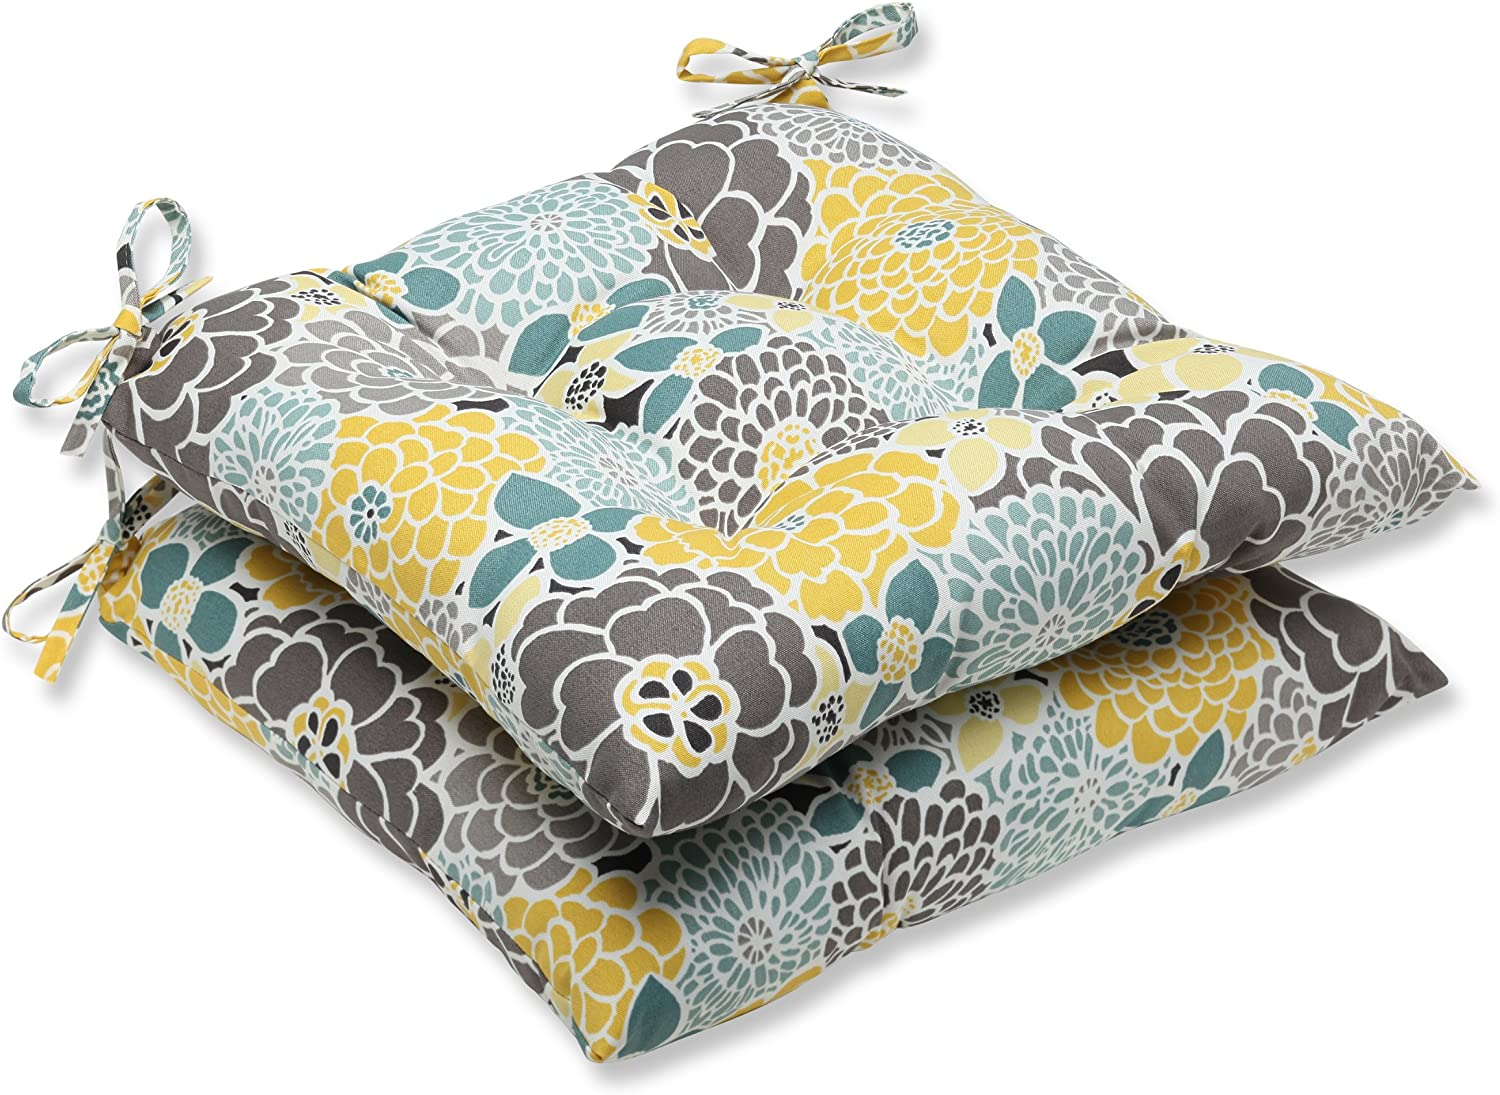 """Pillow Perfect Outdoor/Indoor Lois Vapor Tufted Seat Cushions (Square Back), 19"""" x 18.5"""", Blue, 2 Pack"""